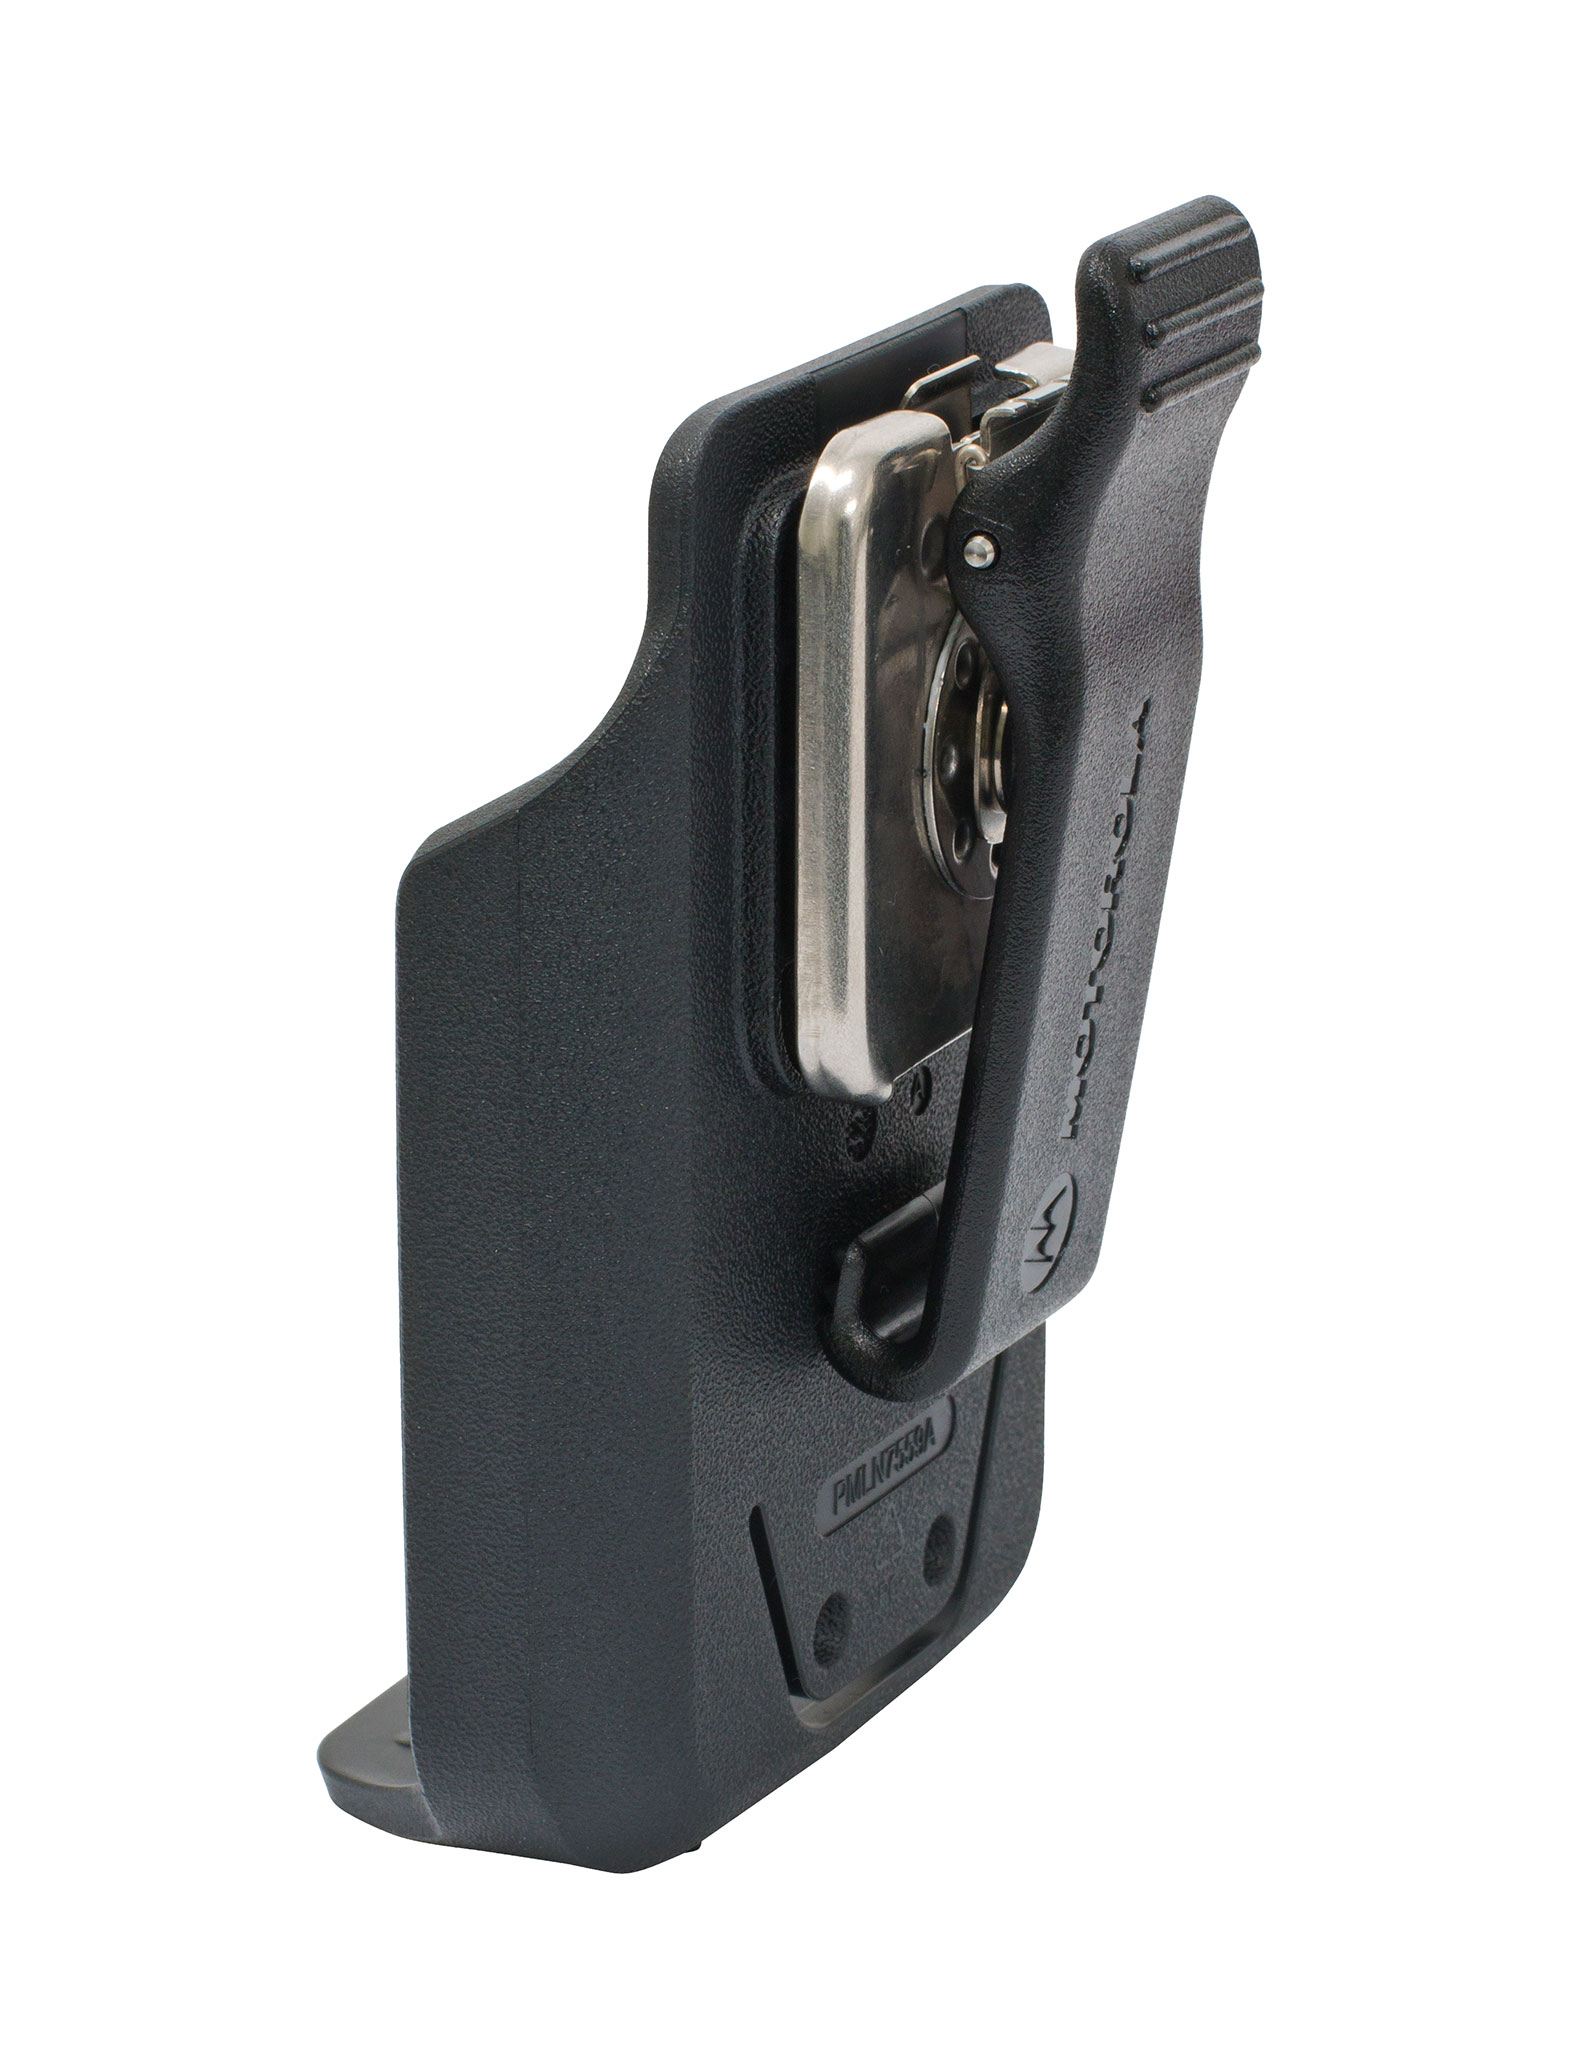 Image of Carry Holster with Belt Clip PMLN7559